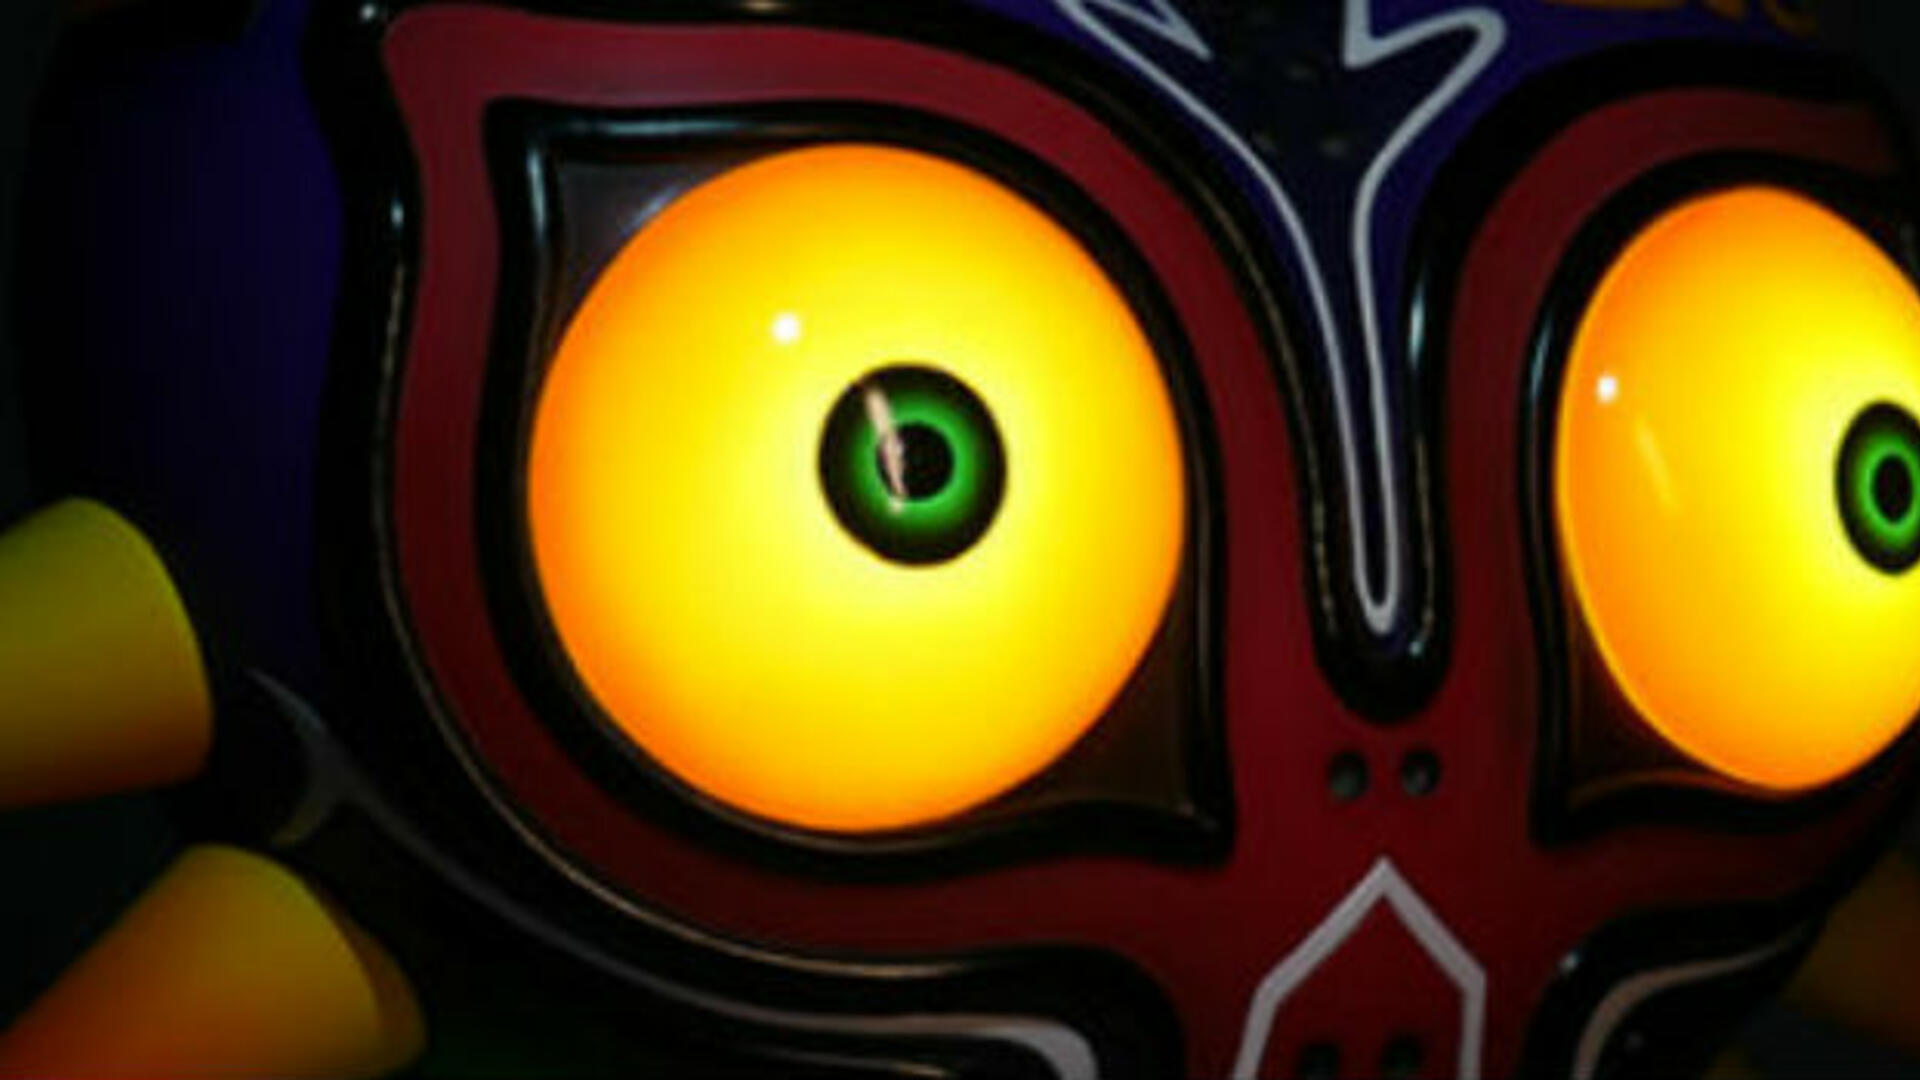 Light up Your Child's Room with a Glow-In-The-Dark Replica of Majora's Mask